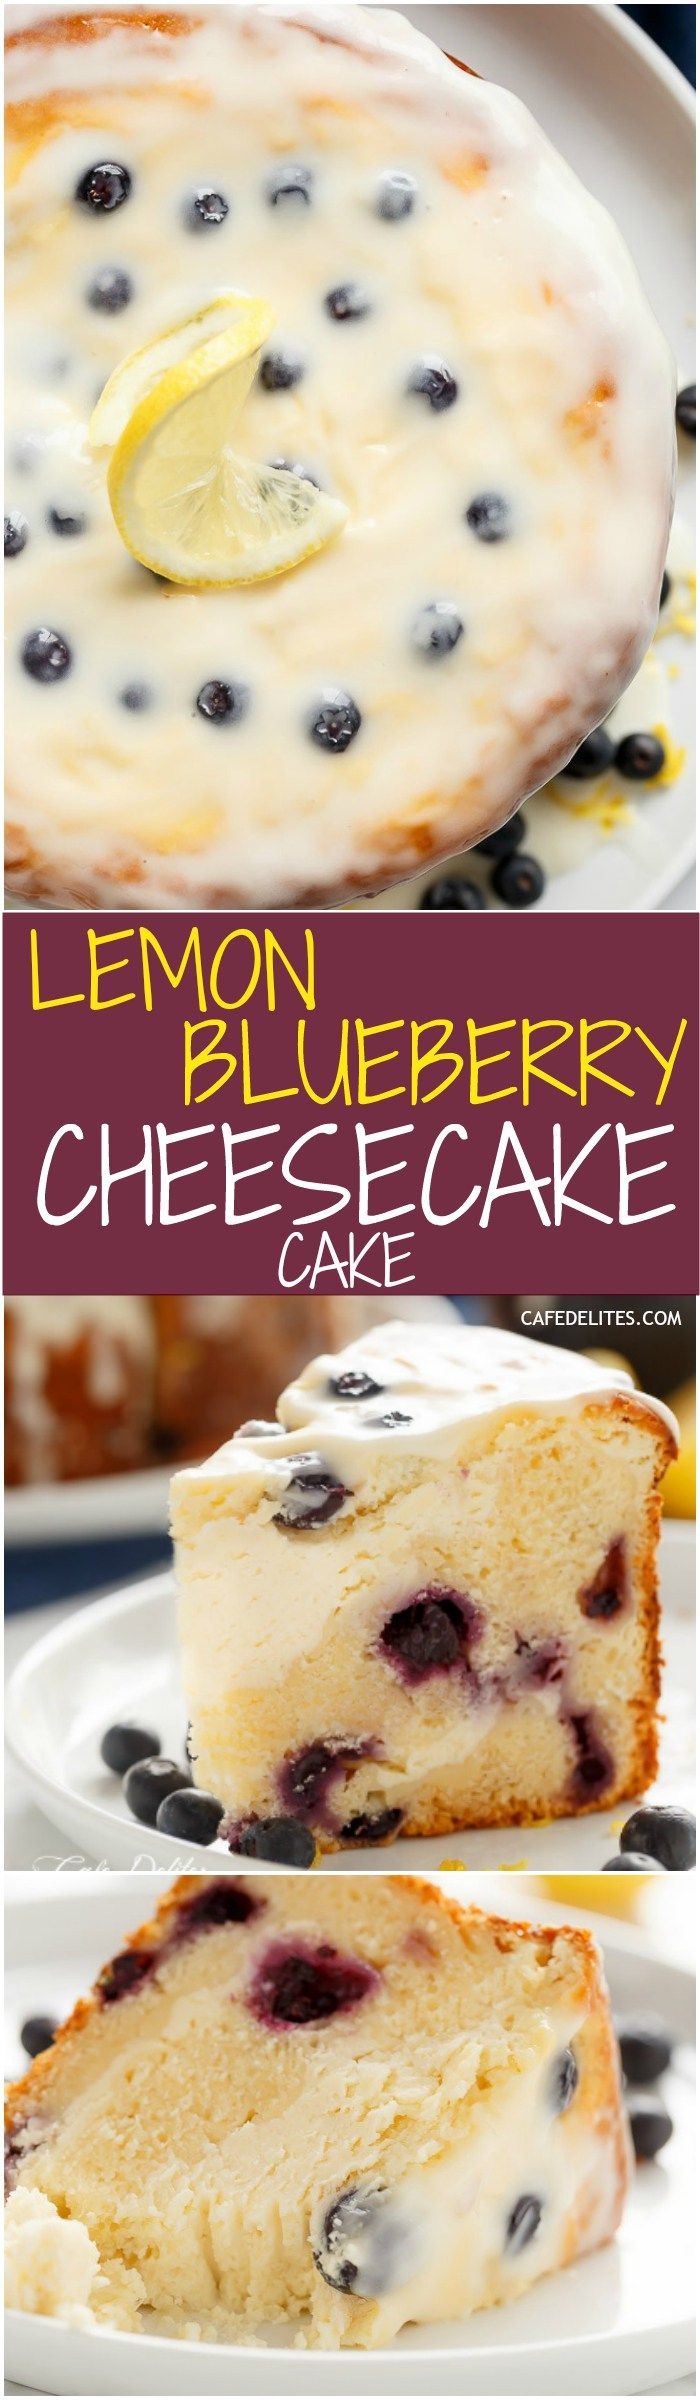 Pin by Averie Sunshine {Averie Cooks} on Cakes, Muffins ...